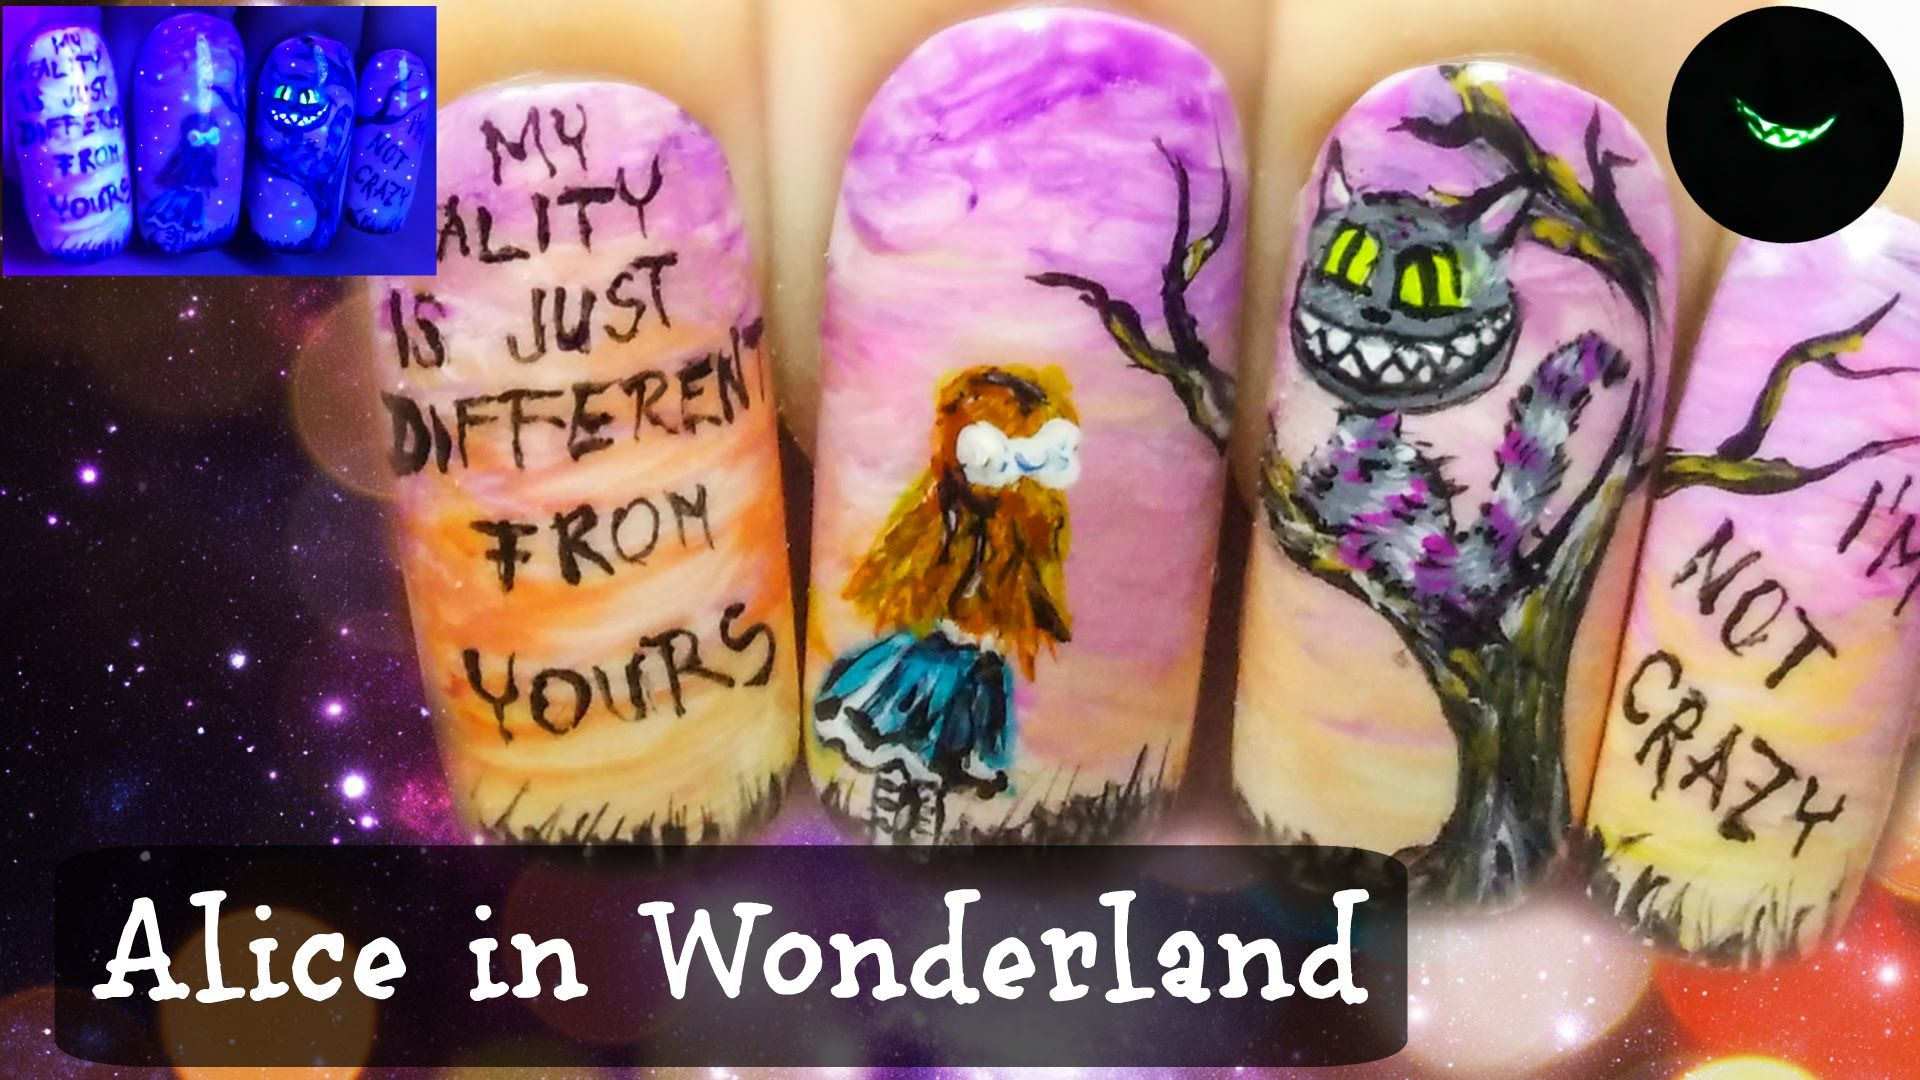 Alice in Wonderland ⎮ The Cheshire Cat ⎮ Glow in the Dark Freehand Nail Video Tutorial